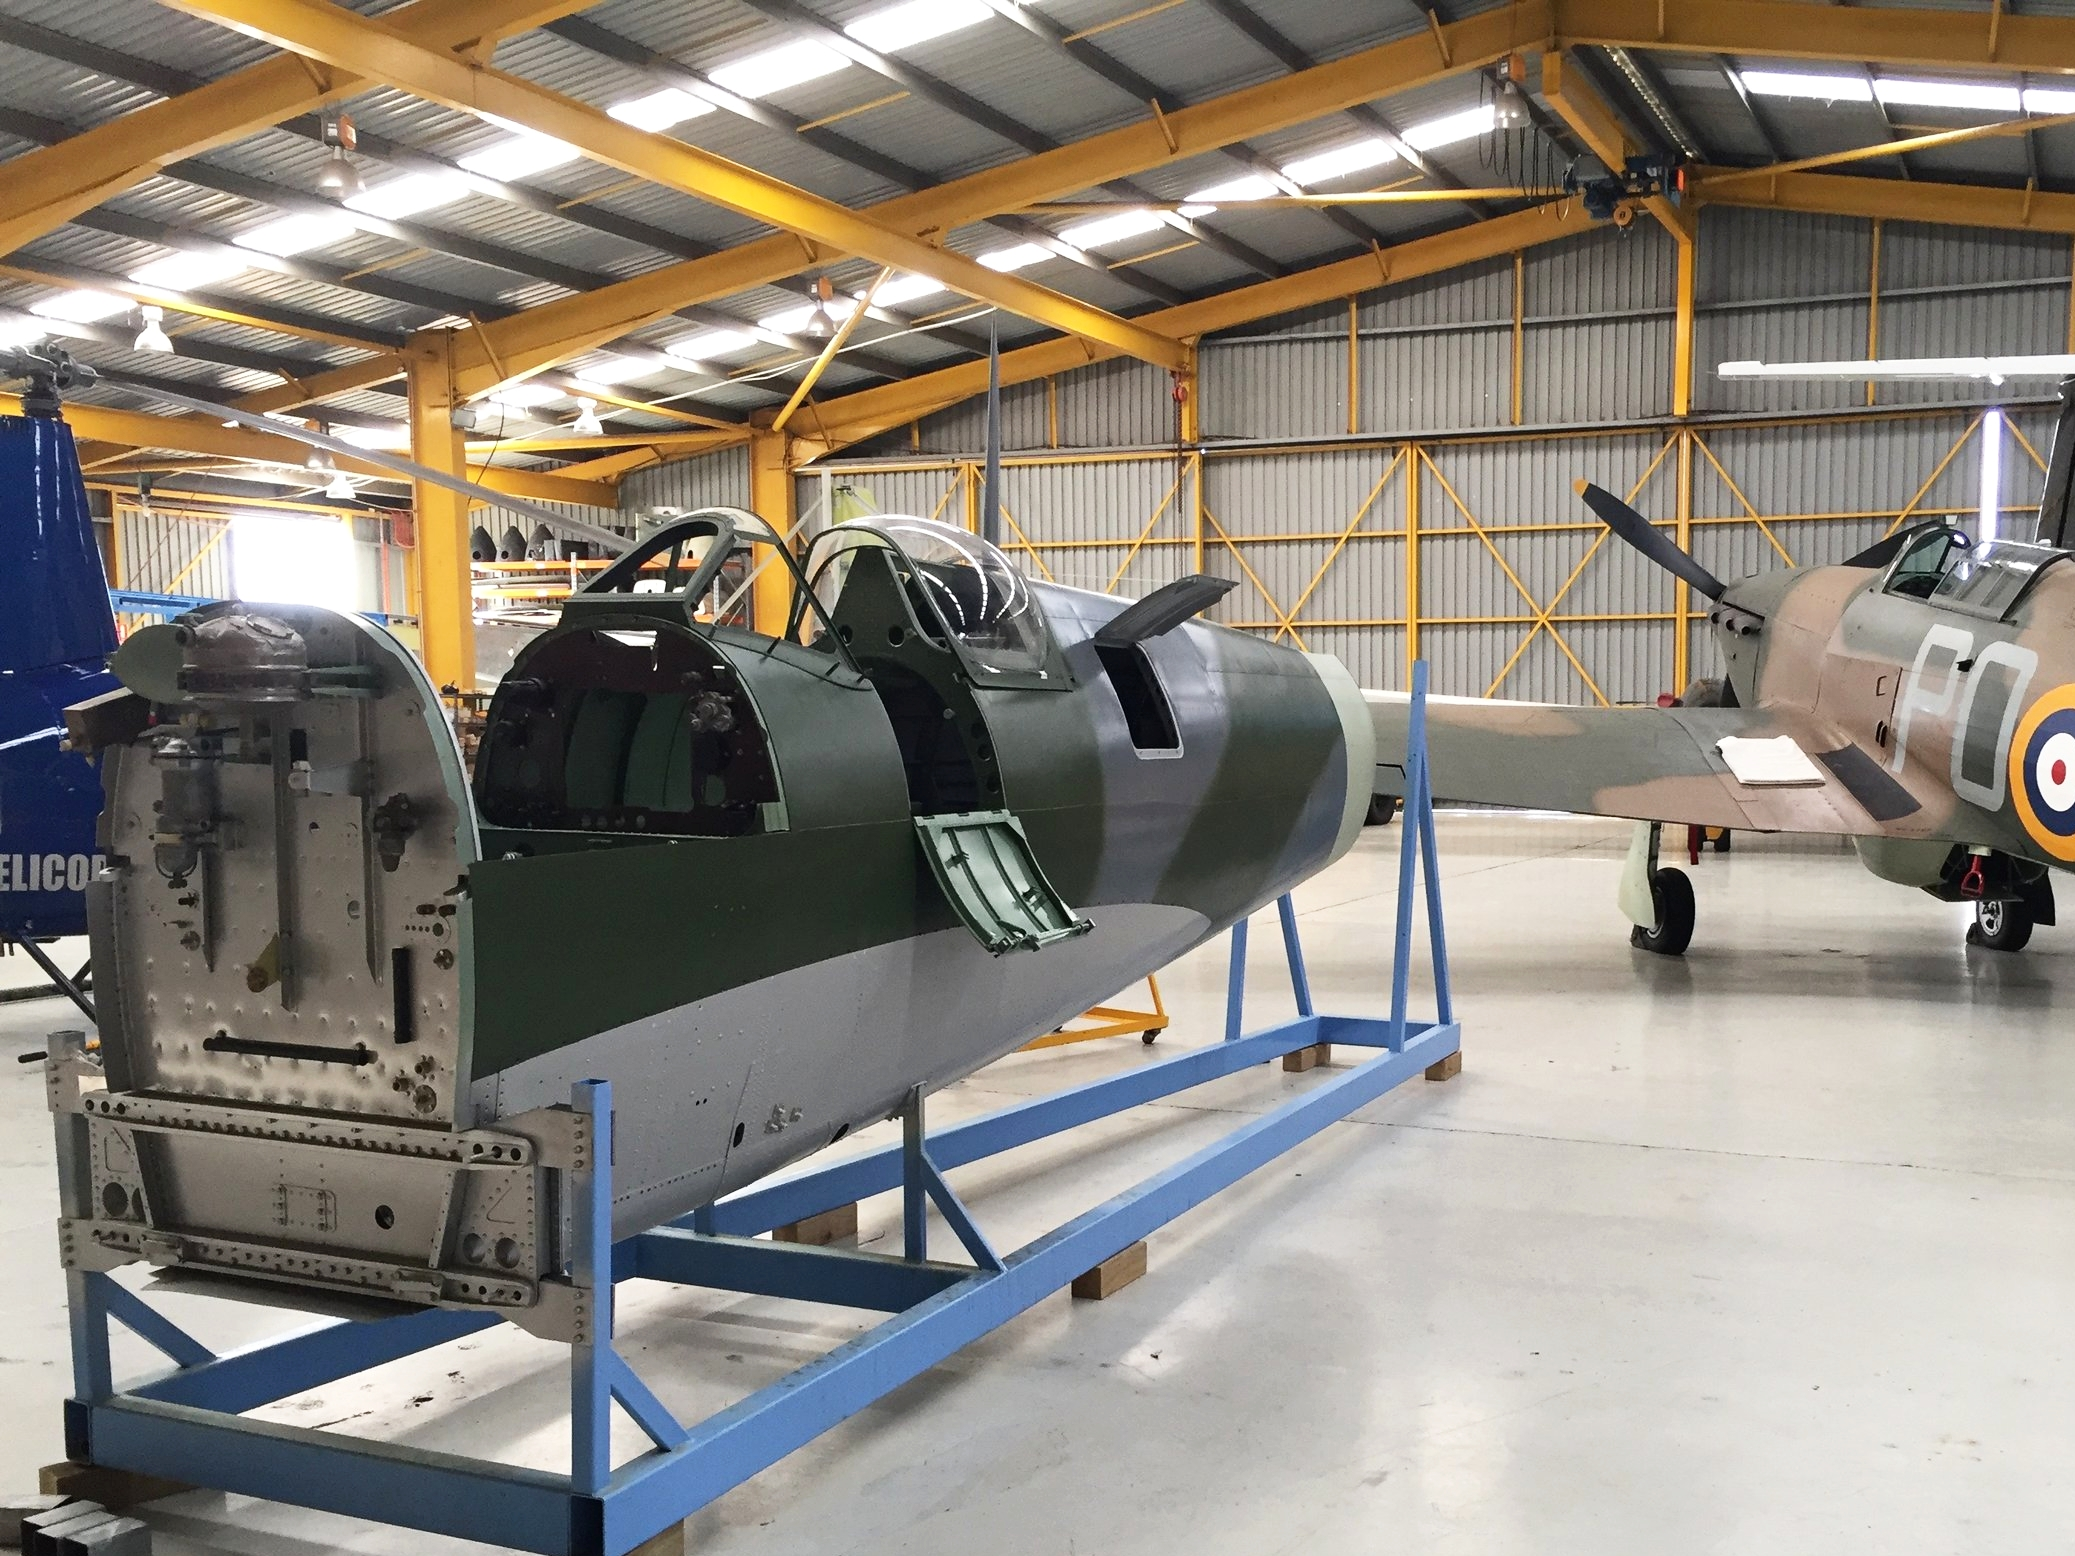 Spitfire MH603's fuselage prior to application of markings  .